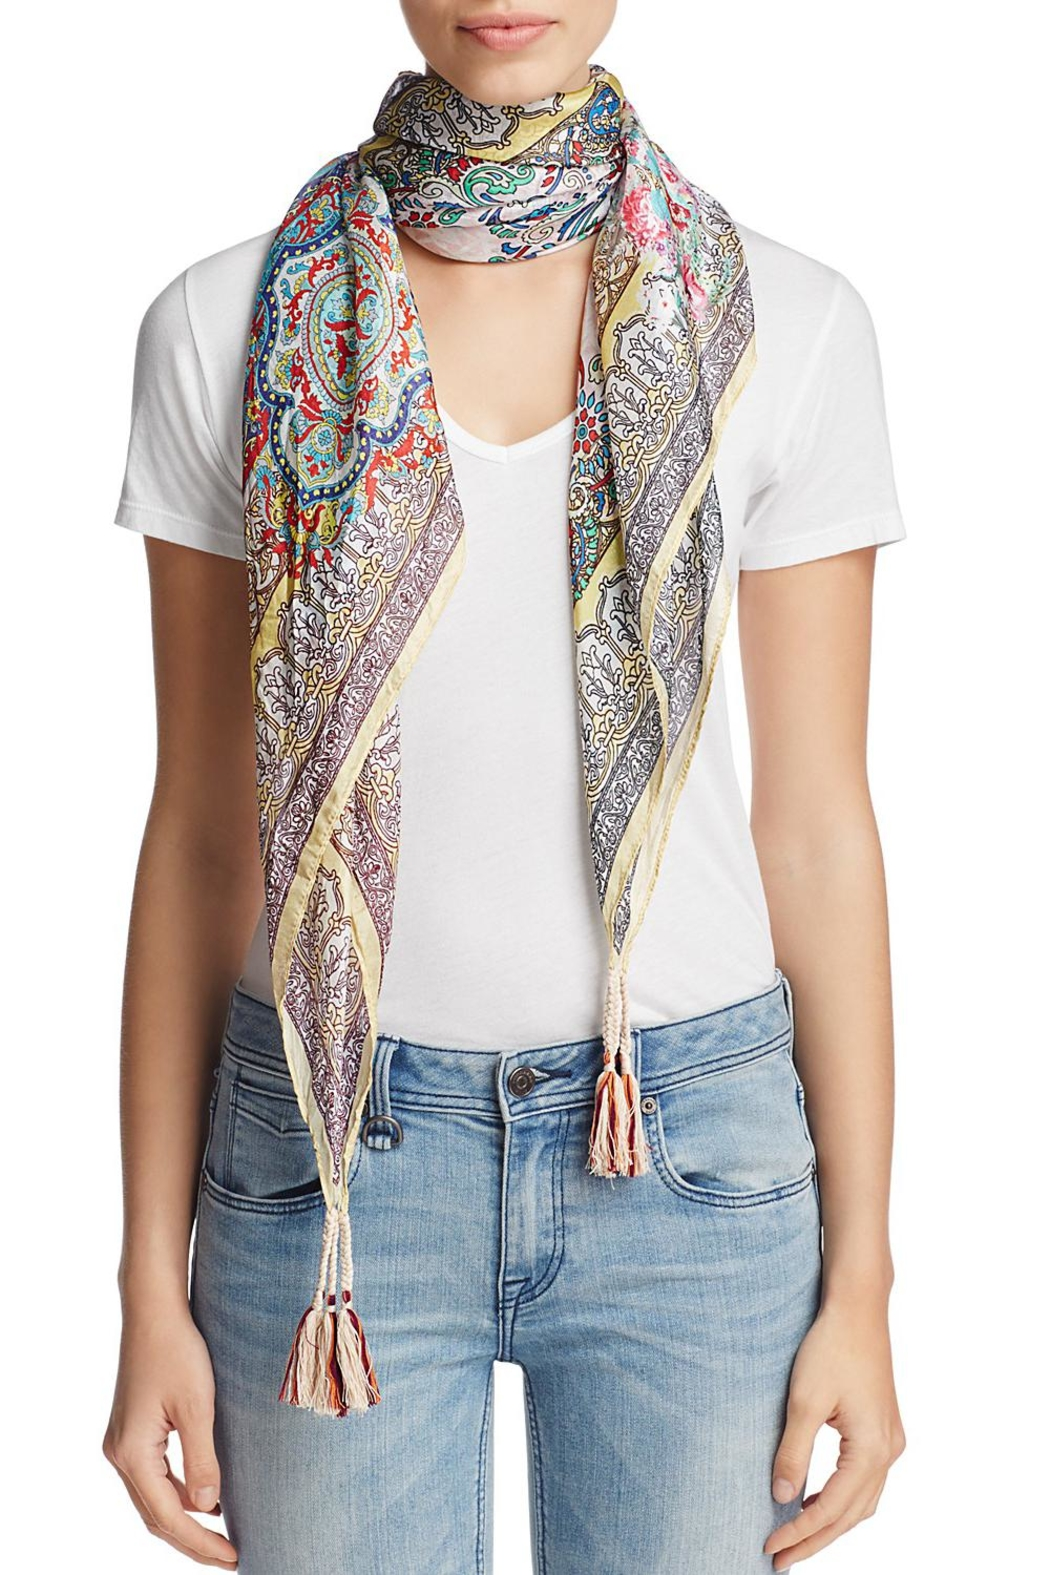 Johnny Was Silk Patterned Scarf - Main Image